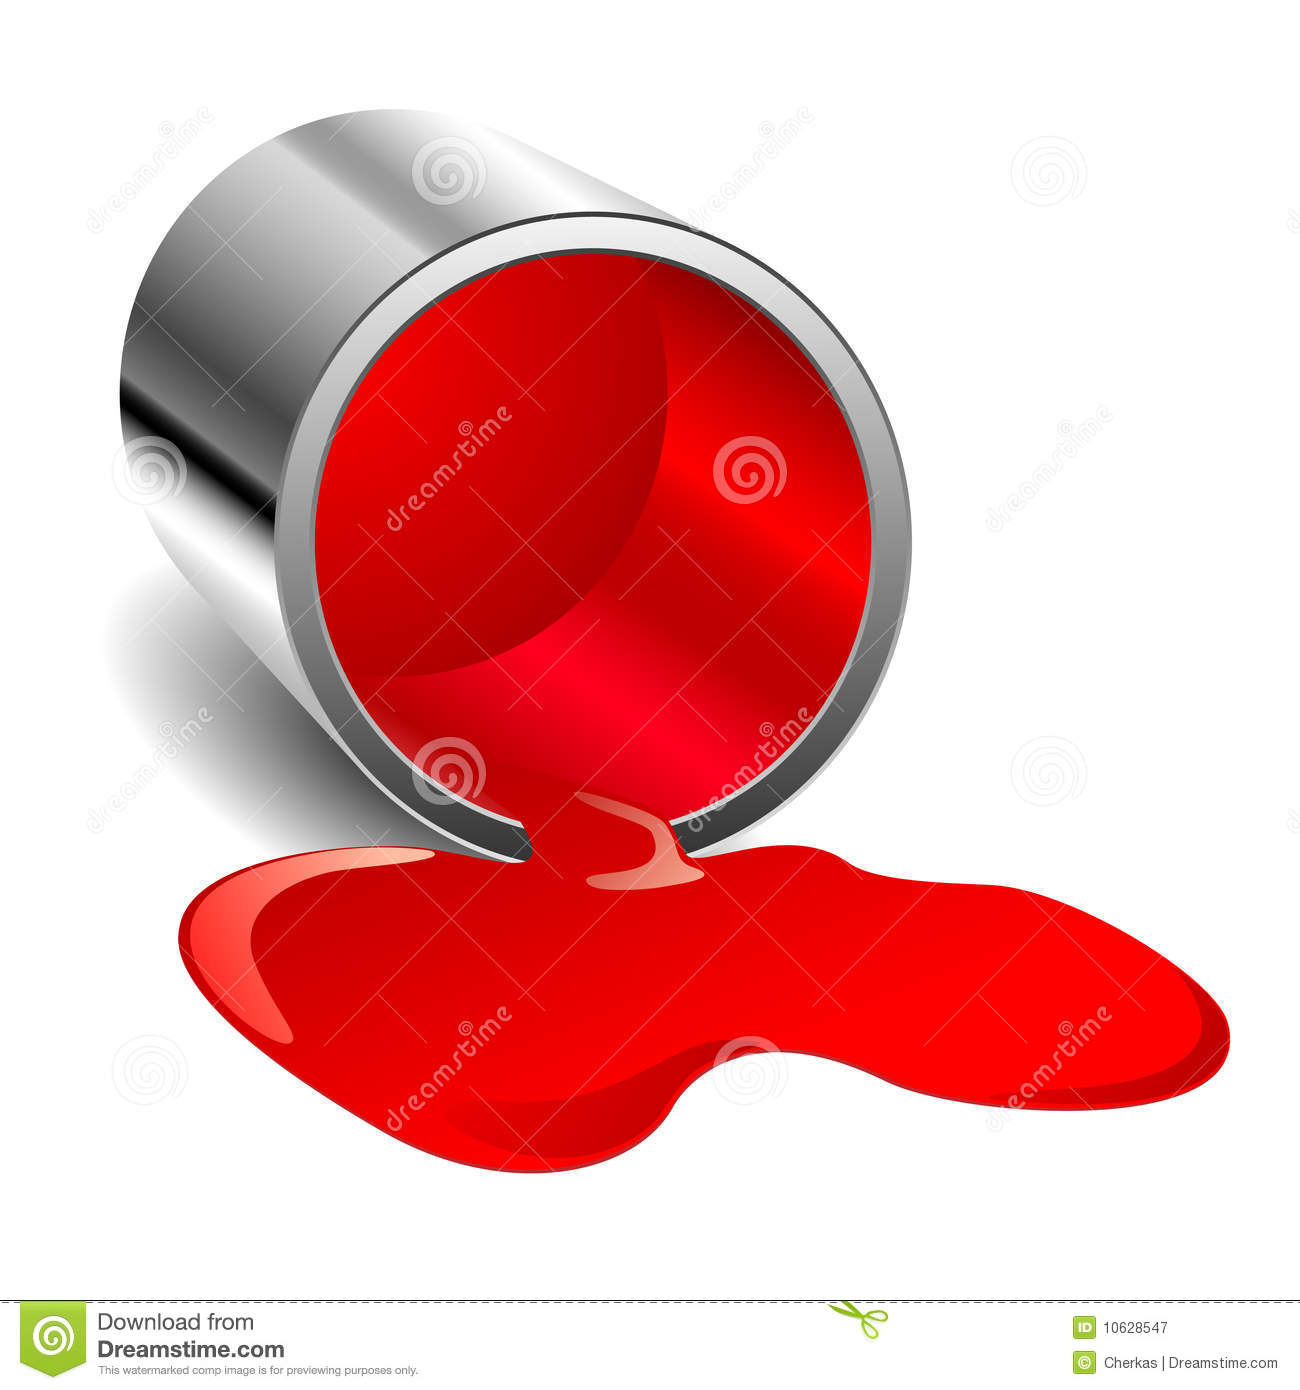 Red spilled paint royalty free stock photography image 10628547 - Maken rode verf ...